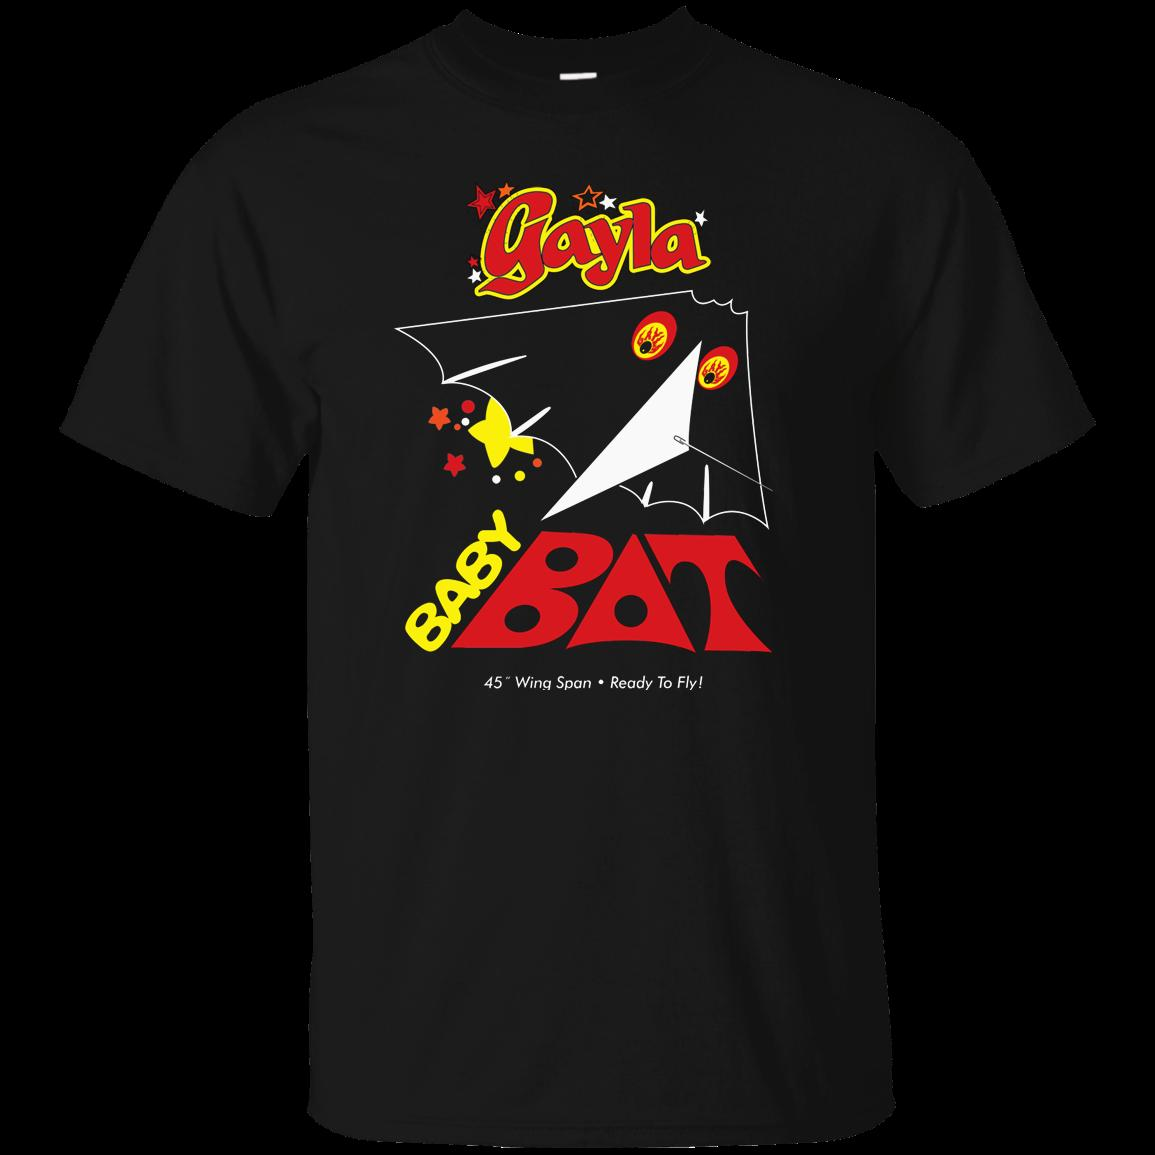 c338367ce Baby Bat, Kite, Gayla, T Shirt, Retro, Toy, Fun, T Shirt Funny Unisex  Casual Tshirt Top White T Shirts With Designs Cloth T Shirt From  Teeslocker, ...